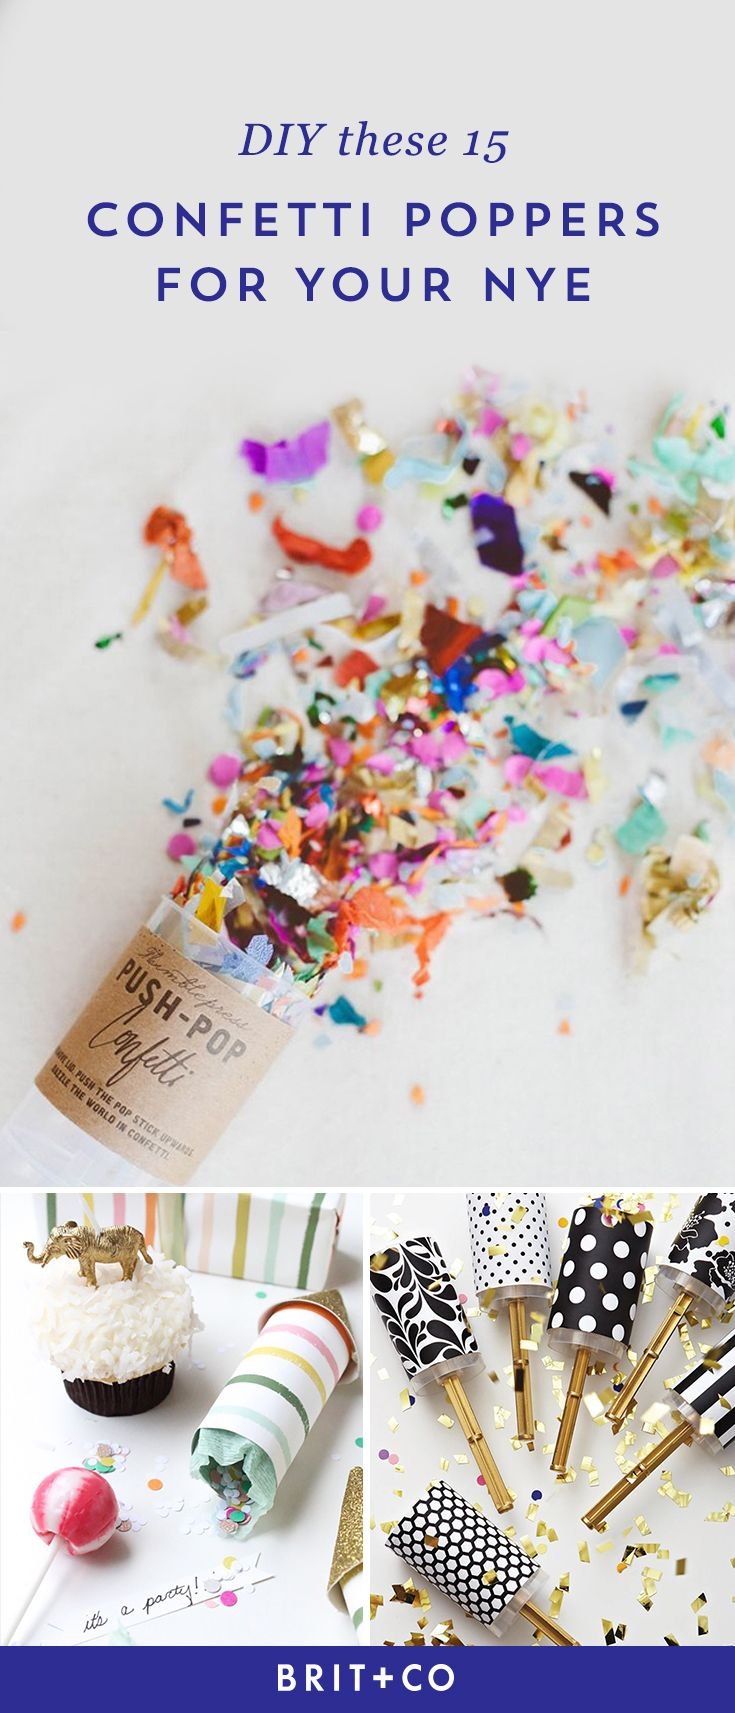 Bookmark this DIY list to make fun + festive confetti poppers for New Years Eve.